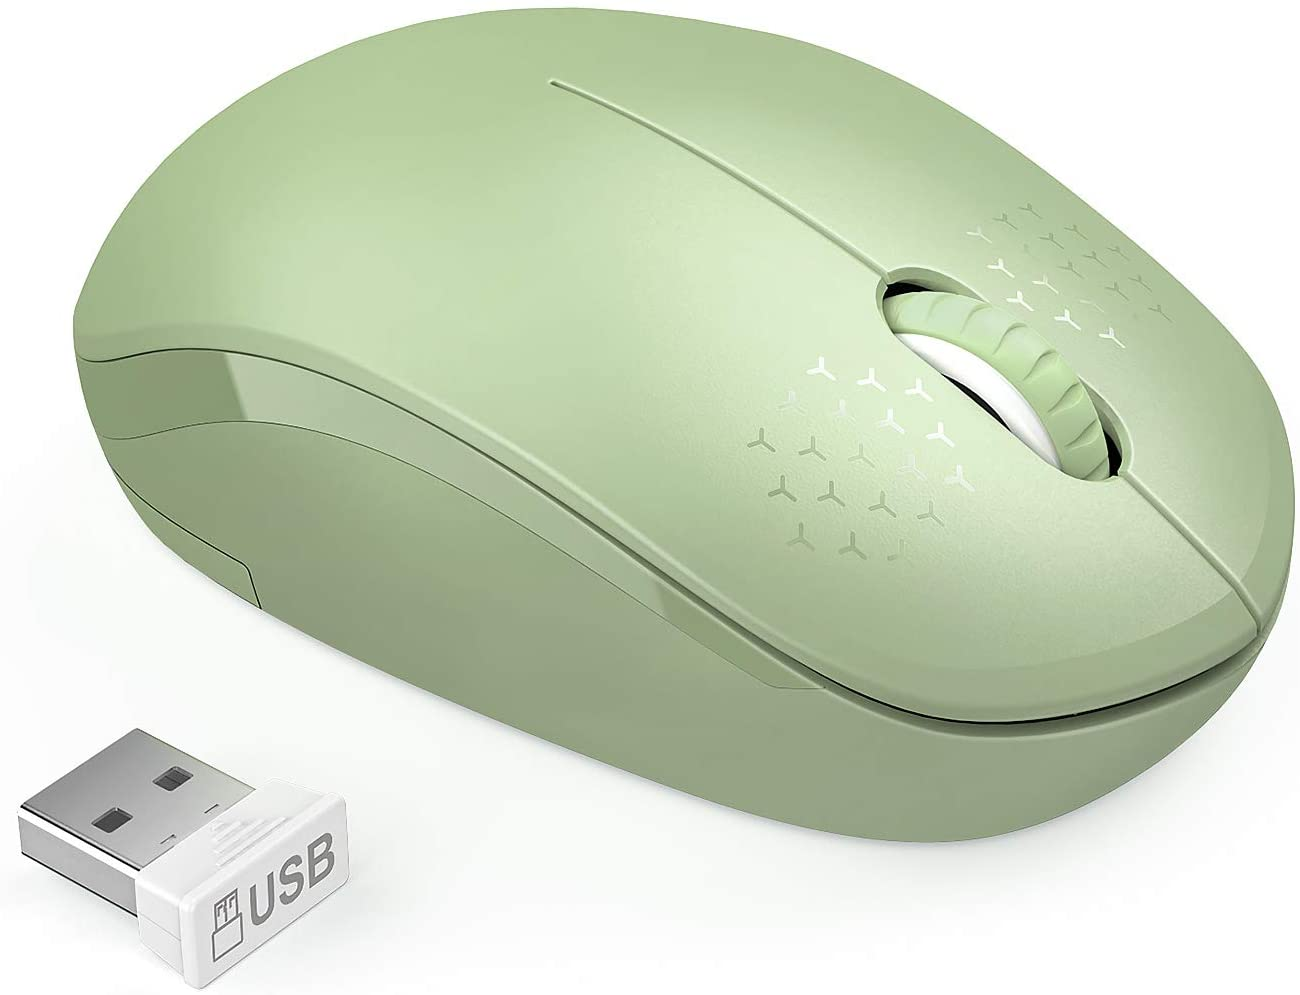 seenda Wireless Mouse, 2.4G Noiseless Mouse with USB Receiver Portable Computer Mice for PC, Tablet, Laptop with Windows System (Olive Green)